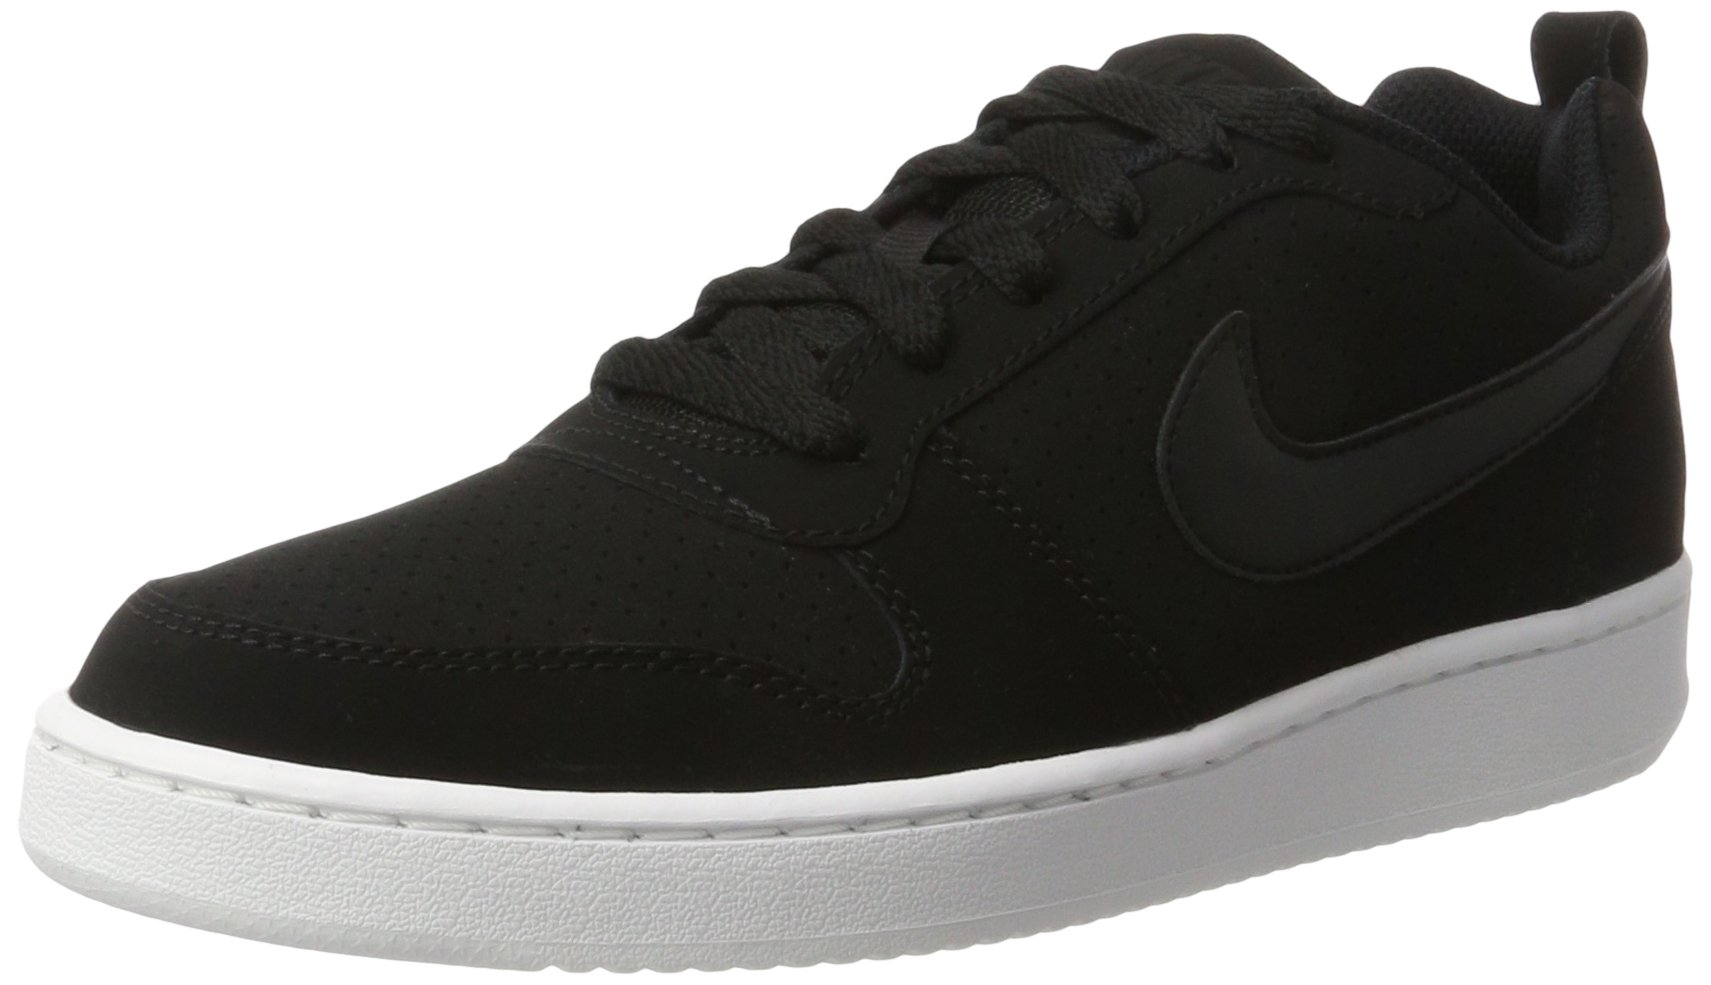 NIKE Women's Court Borough Low Sneaker, Black/Black/White, 9.5 B(M) US